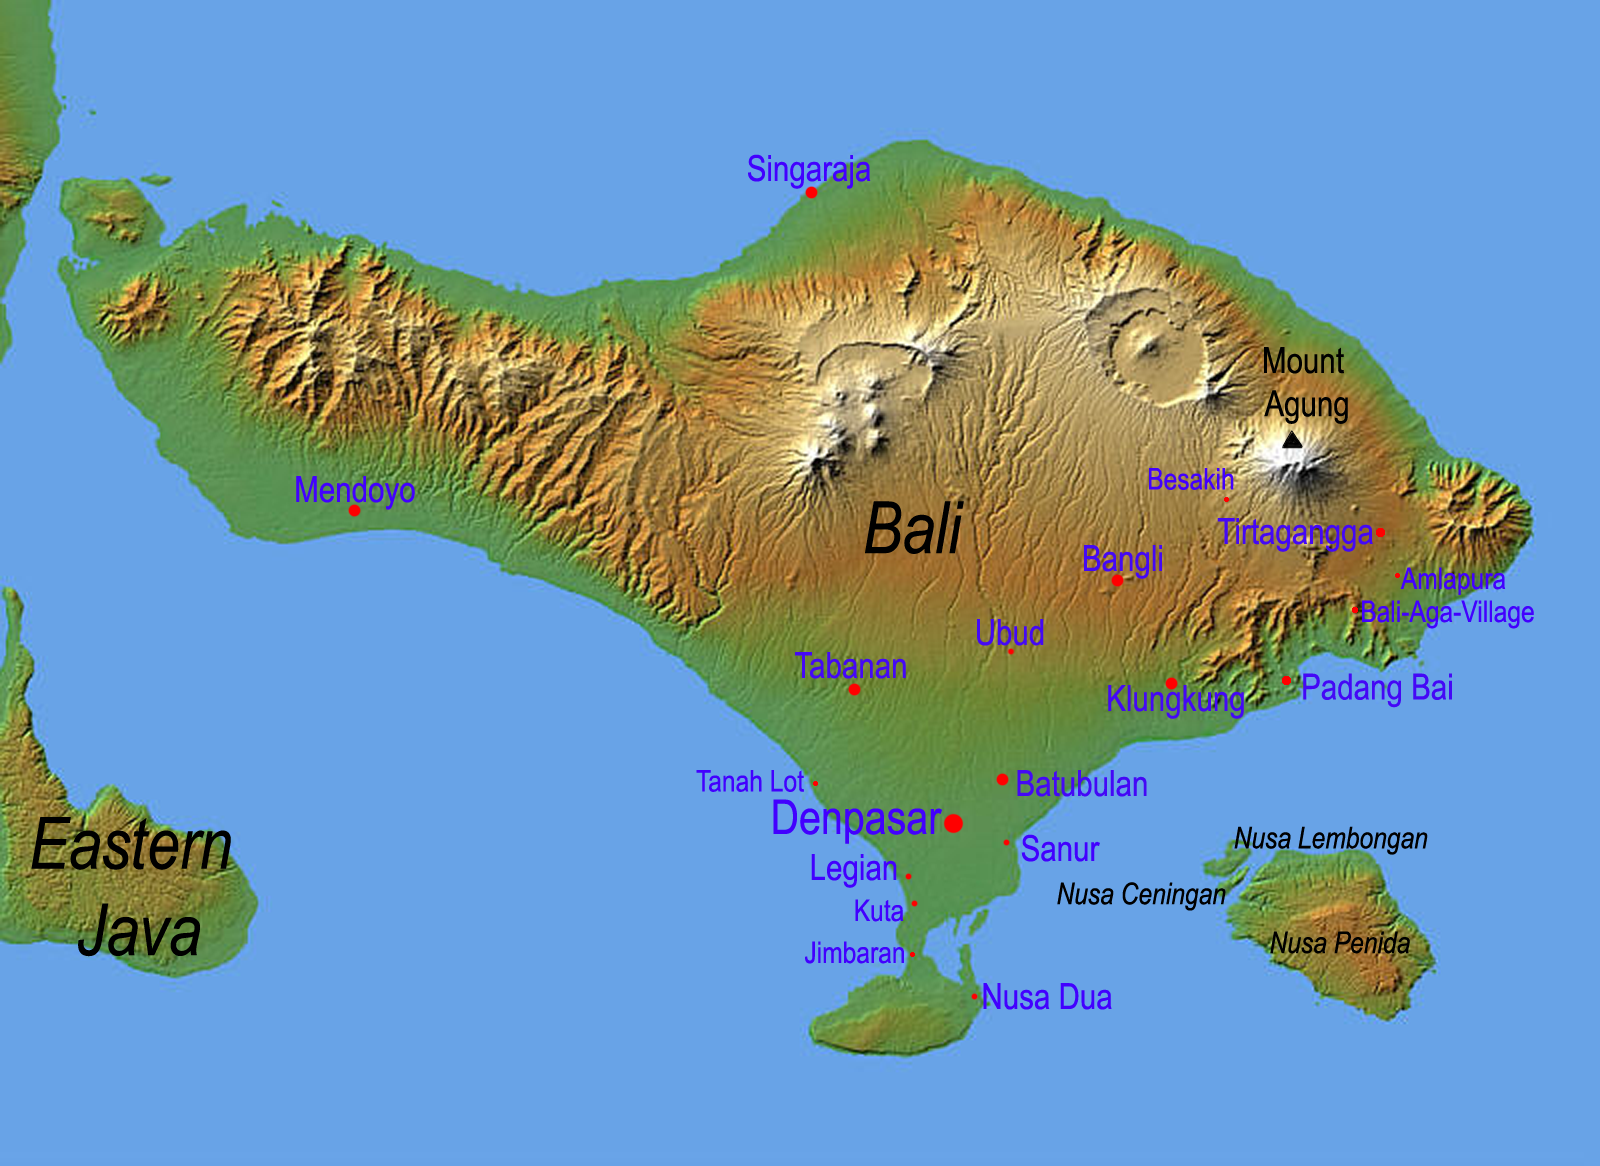 The Map of Bali